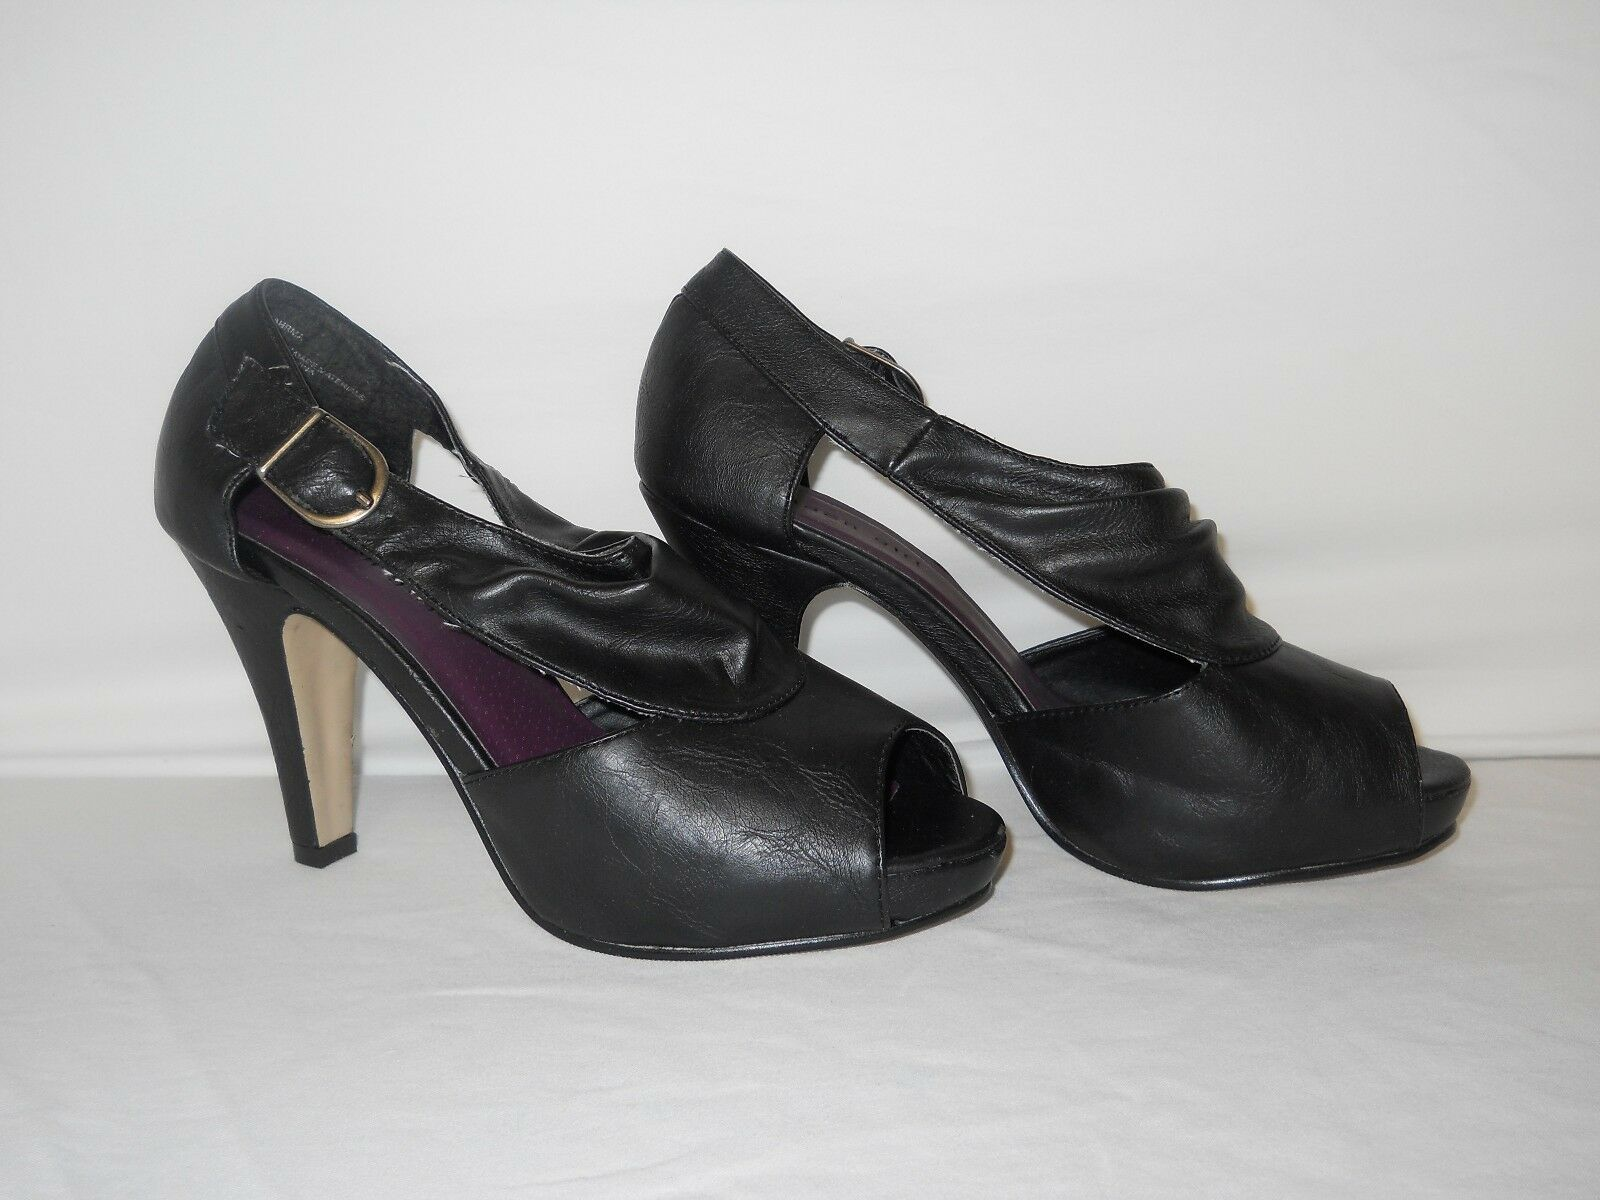 Madden Girl New Womens Kahrma Black Open Toe Heels 7.5 M shoes Steve Madden